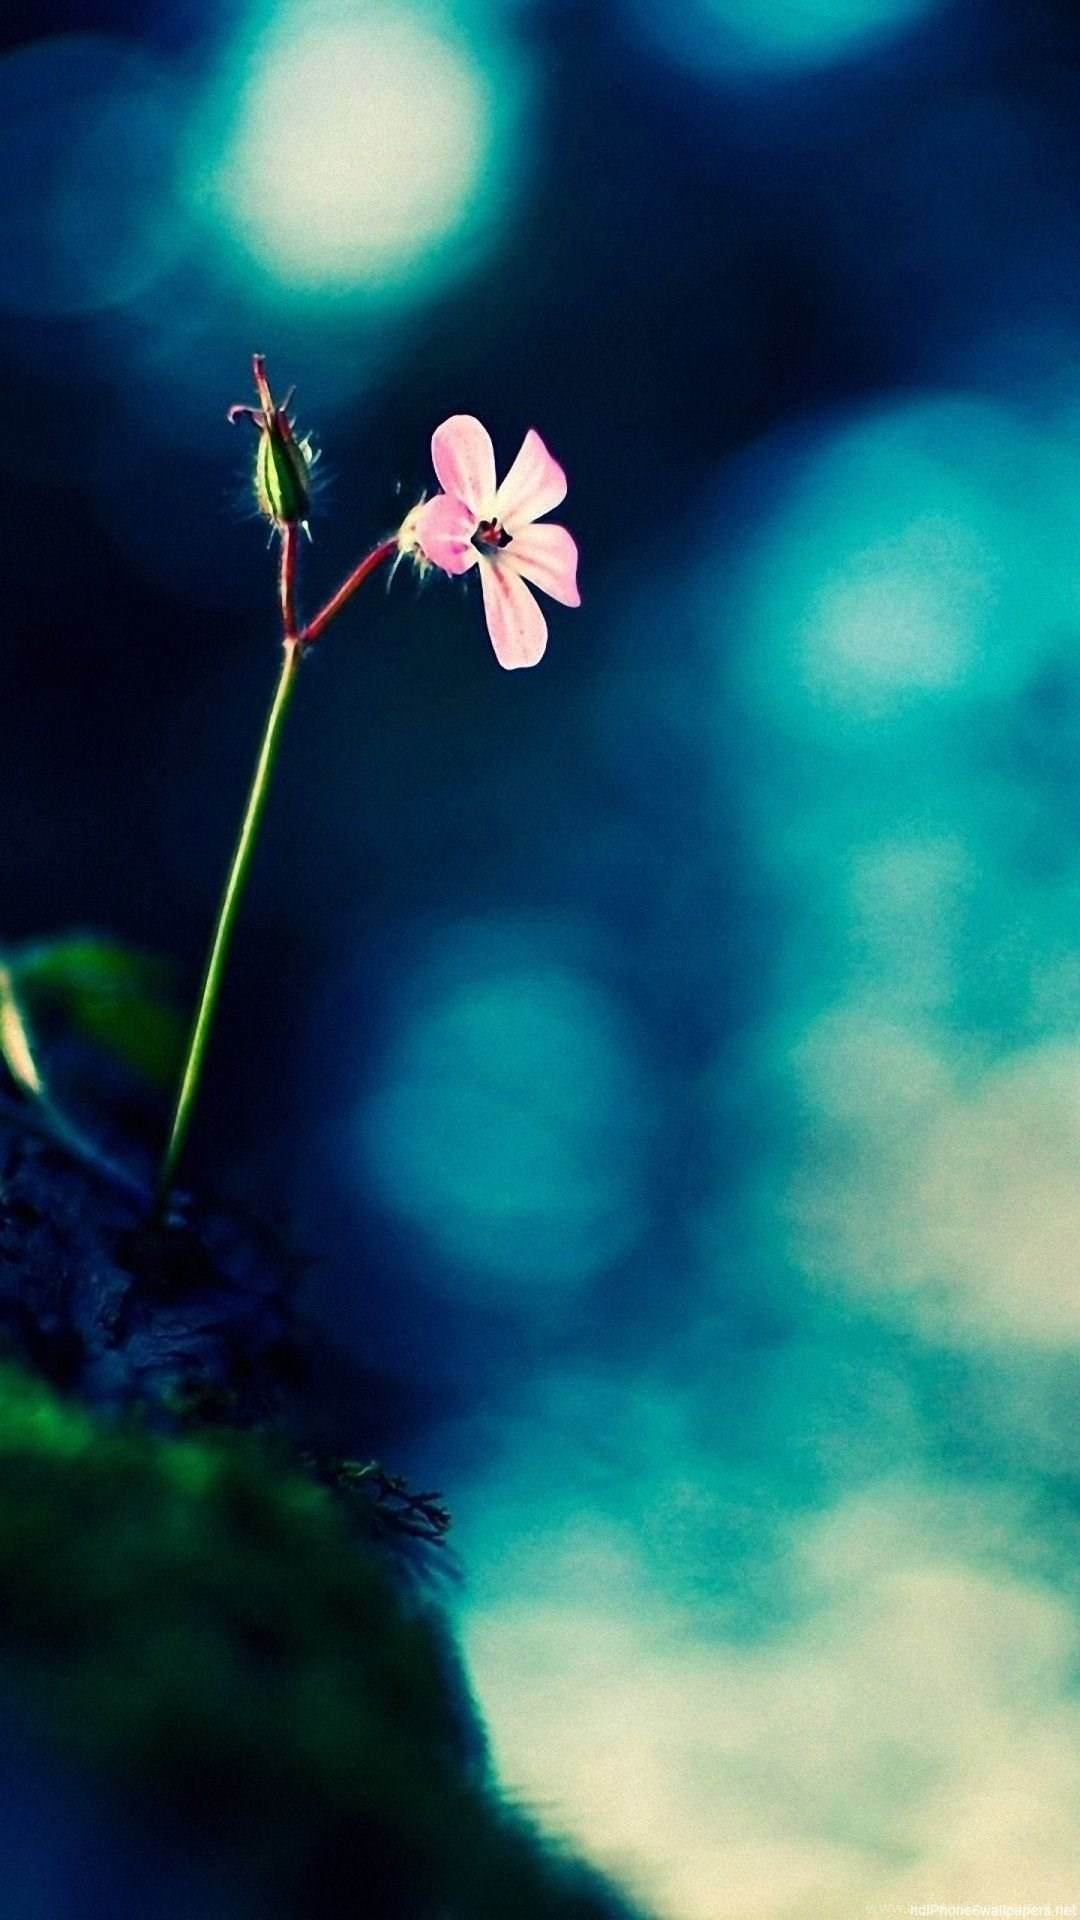 Flower Iphone 6 Wallpapers Hd And Flower 6 Plus Wallpapers 1080p Desktop Background